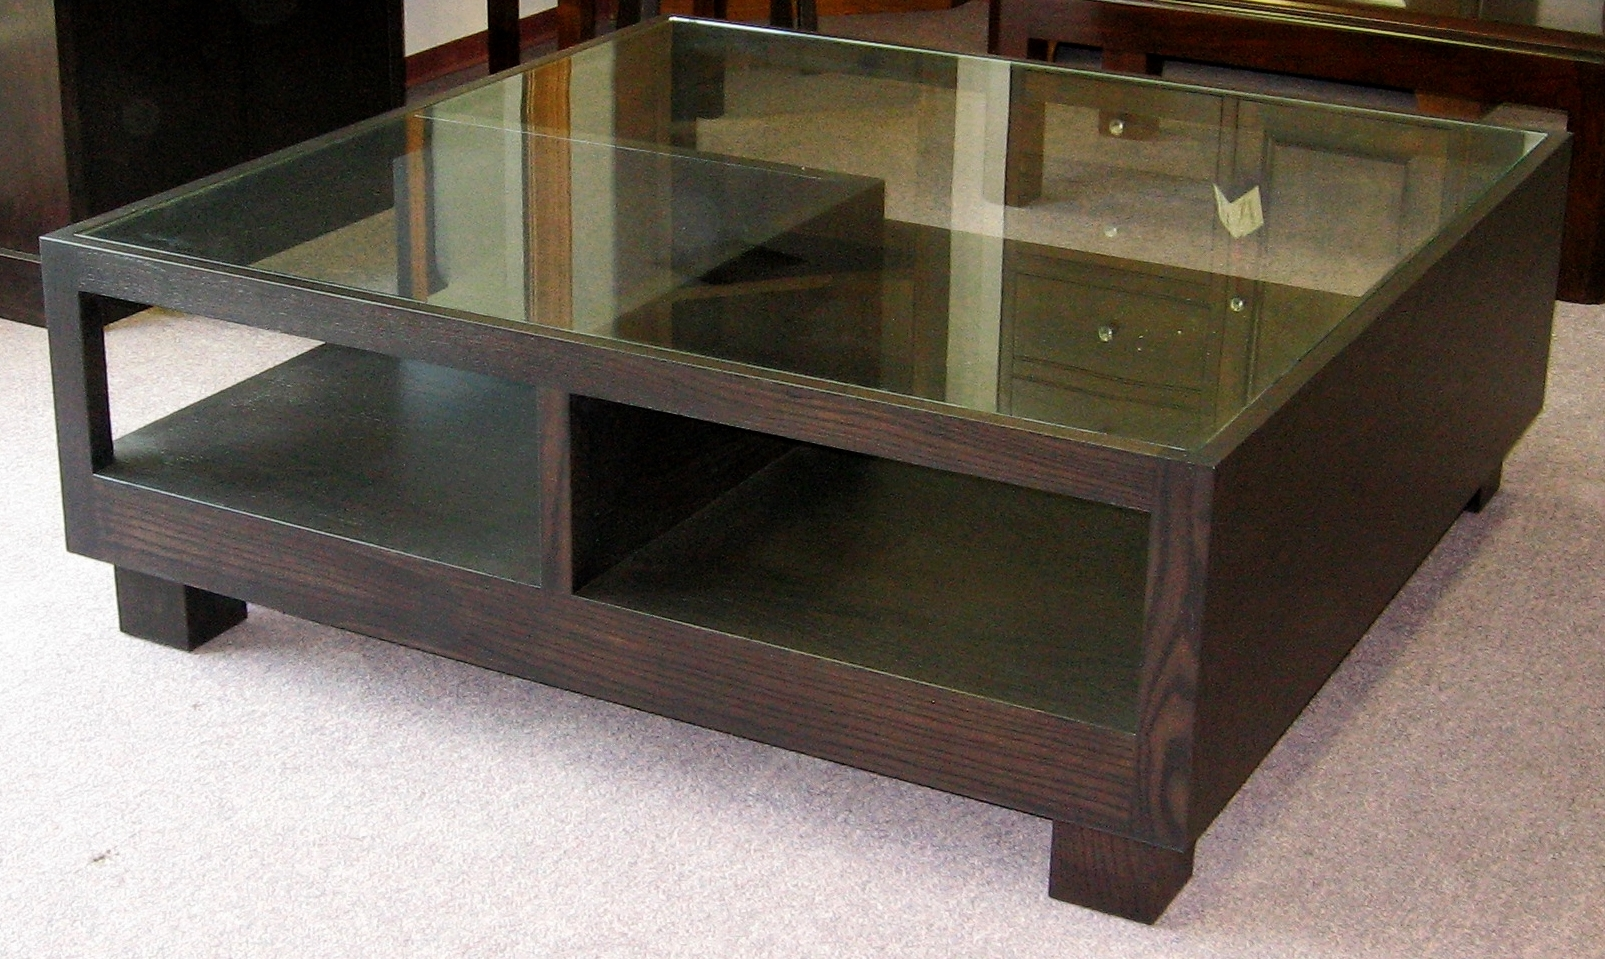 large-square-glass-top-coffee-table.JPG